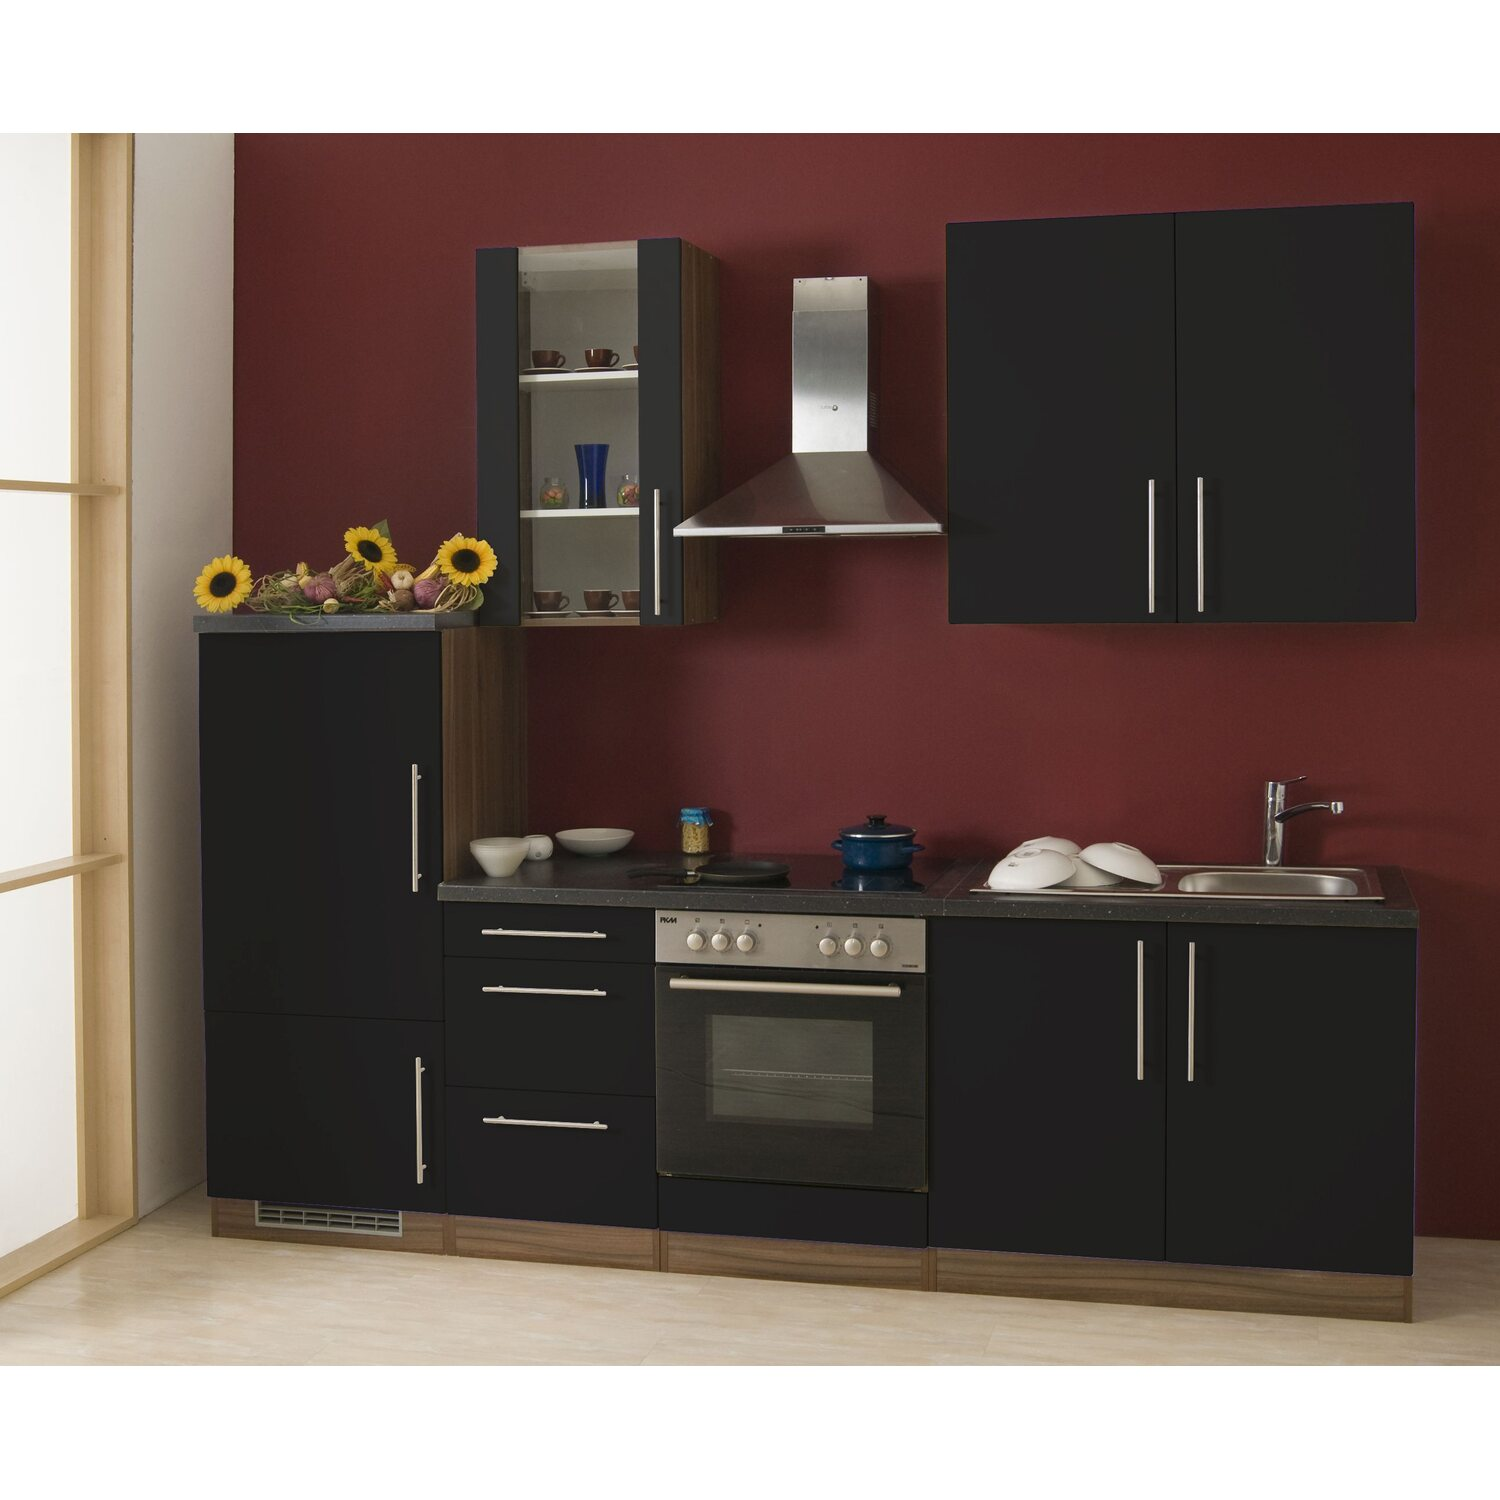 mebasa k chenzeile cucina 270 cm komplett mit ger ten grau kaufen bei obi. Black Bedroom Furniture Sets. Home Design Ideas